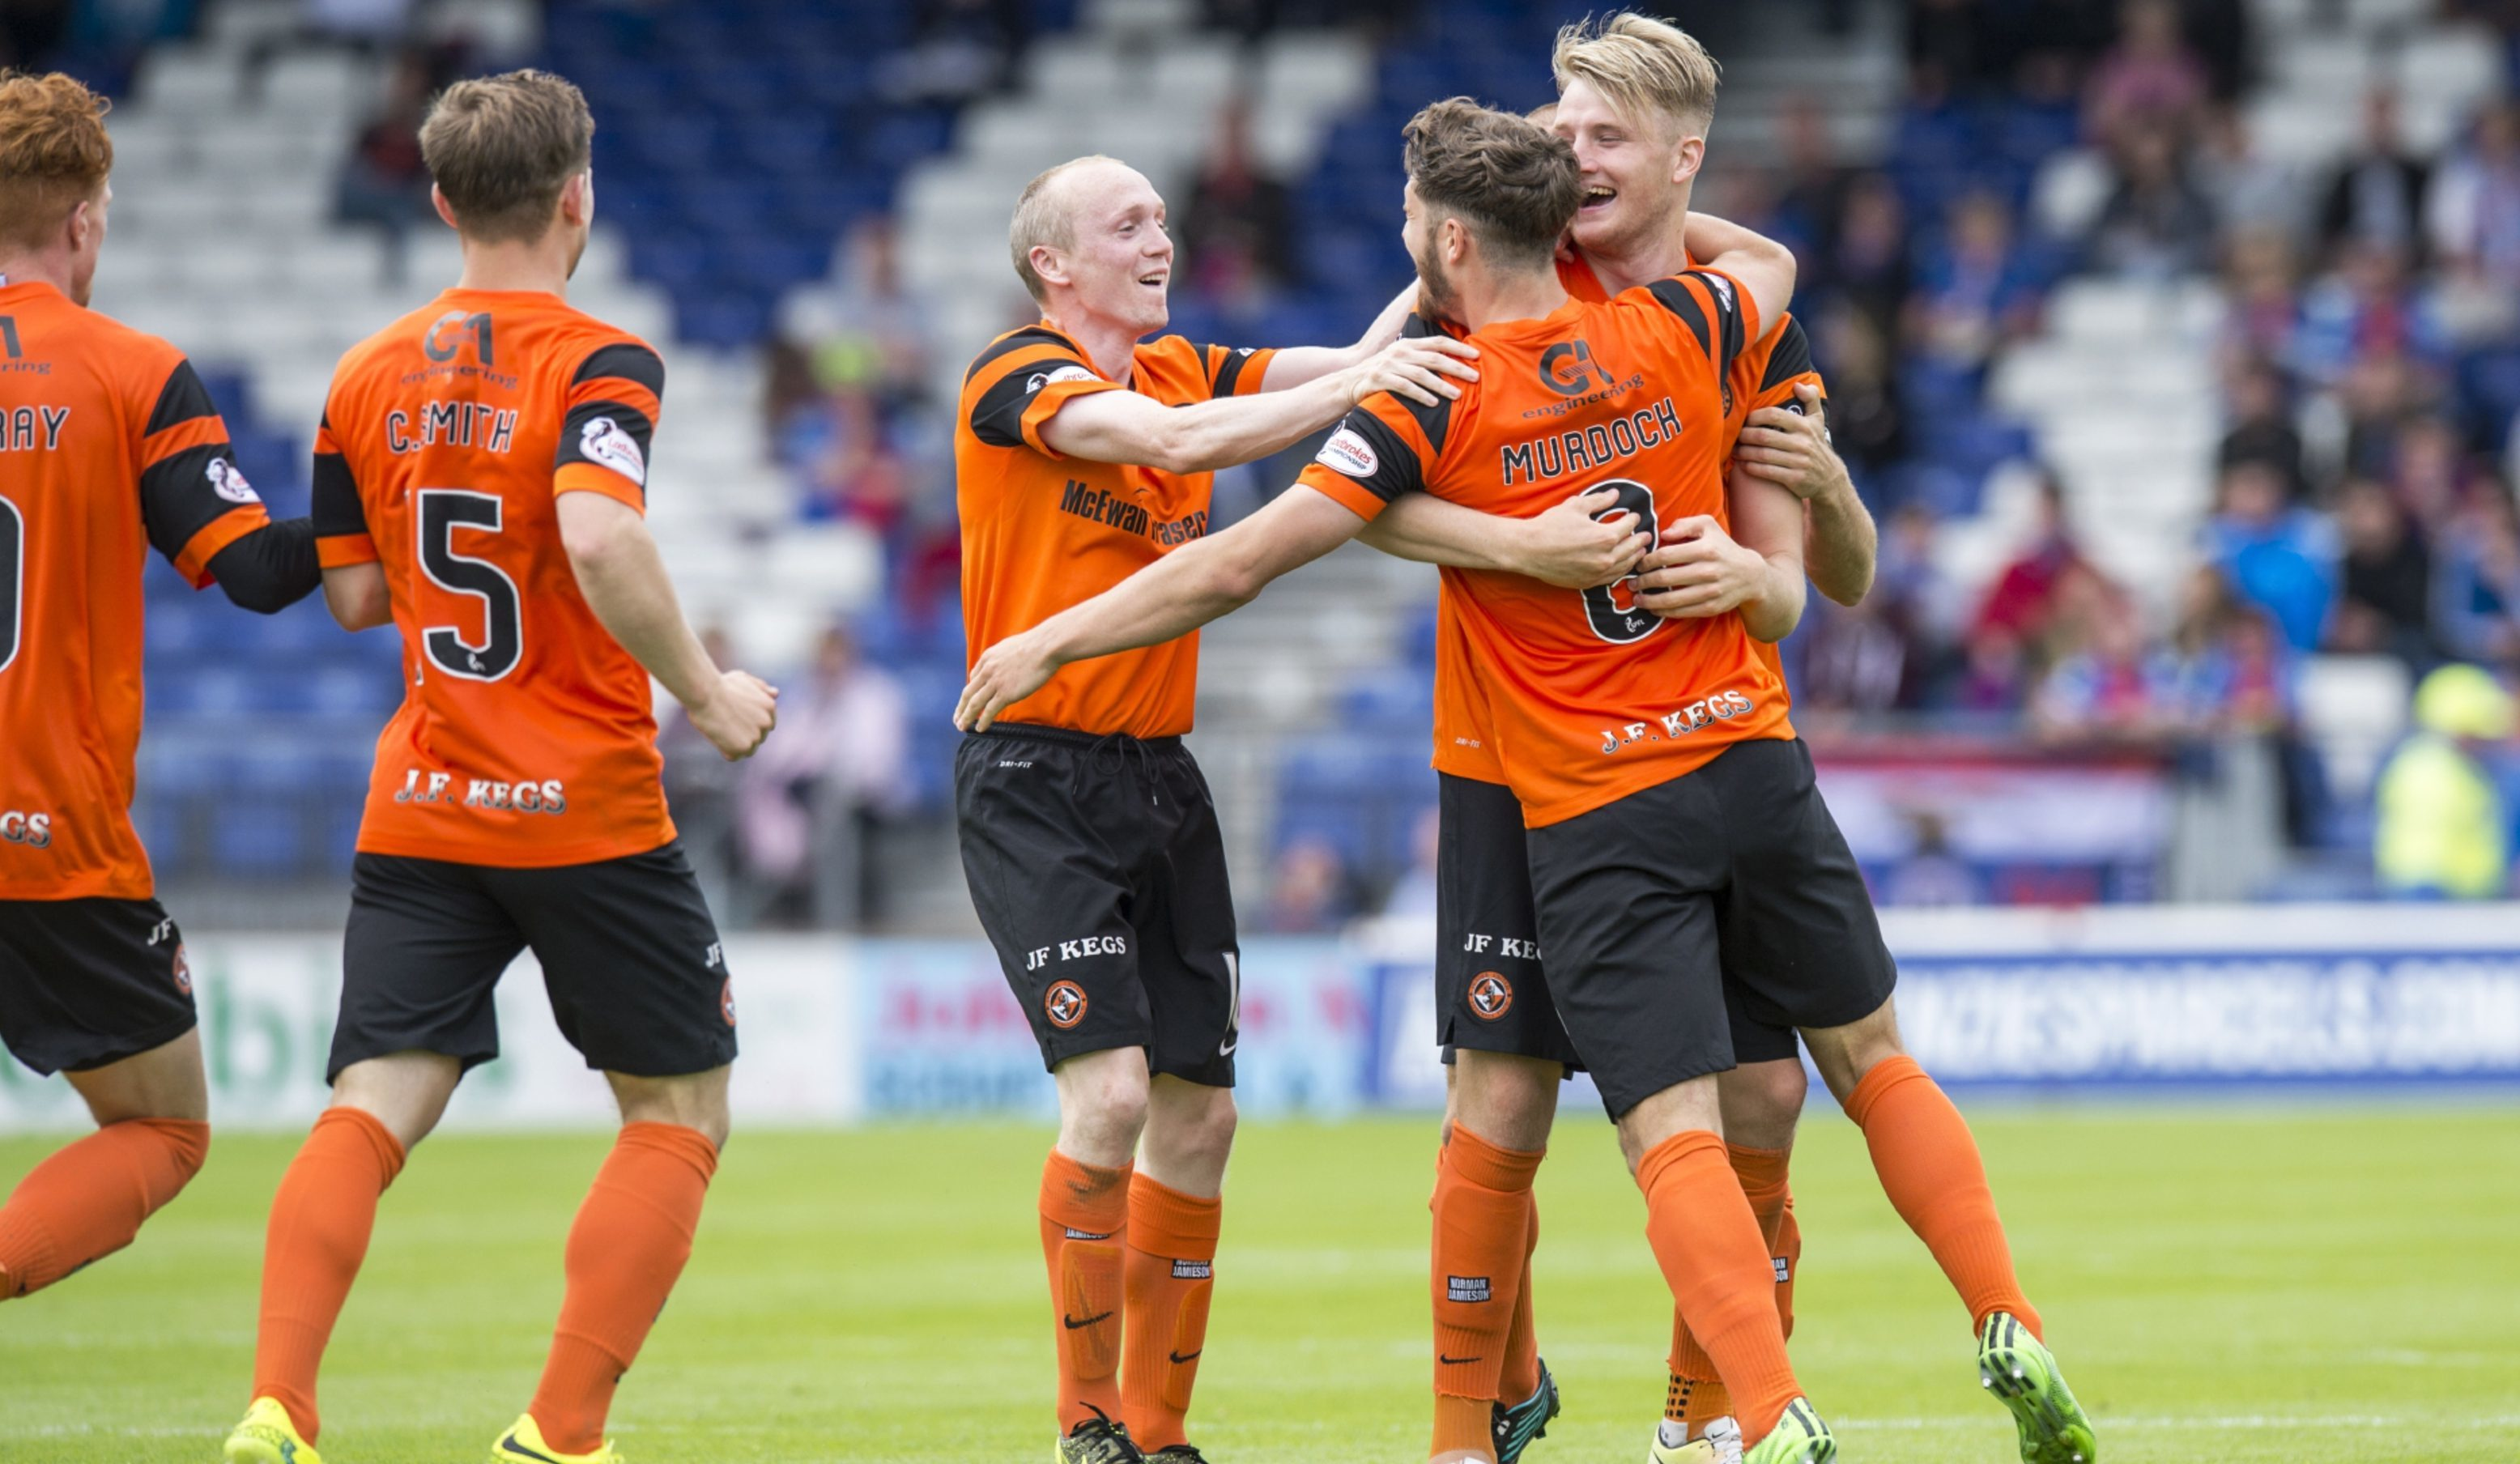 United's players celebrate Stewart Murdoch's goal against Inverness.